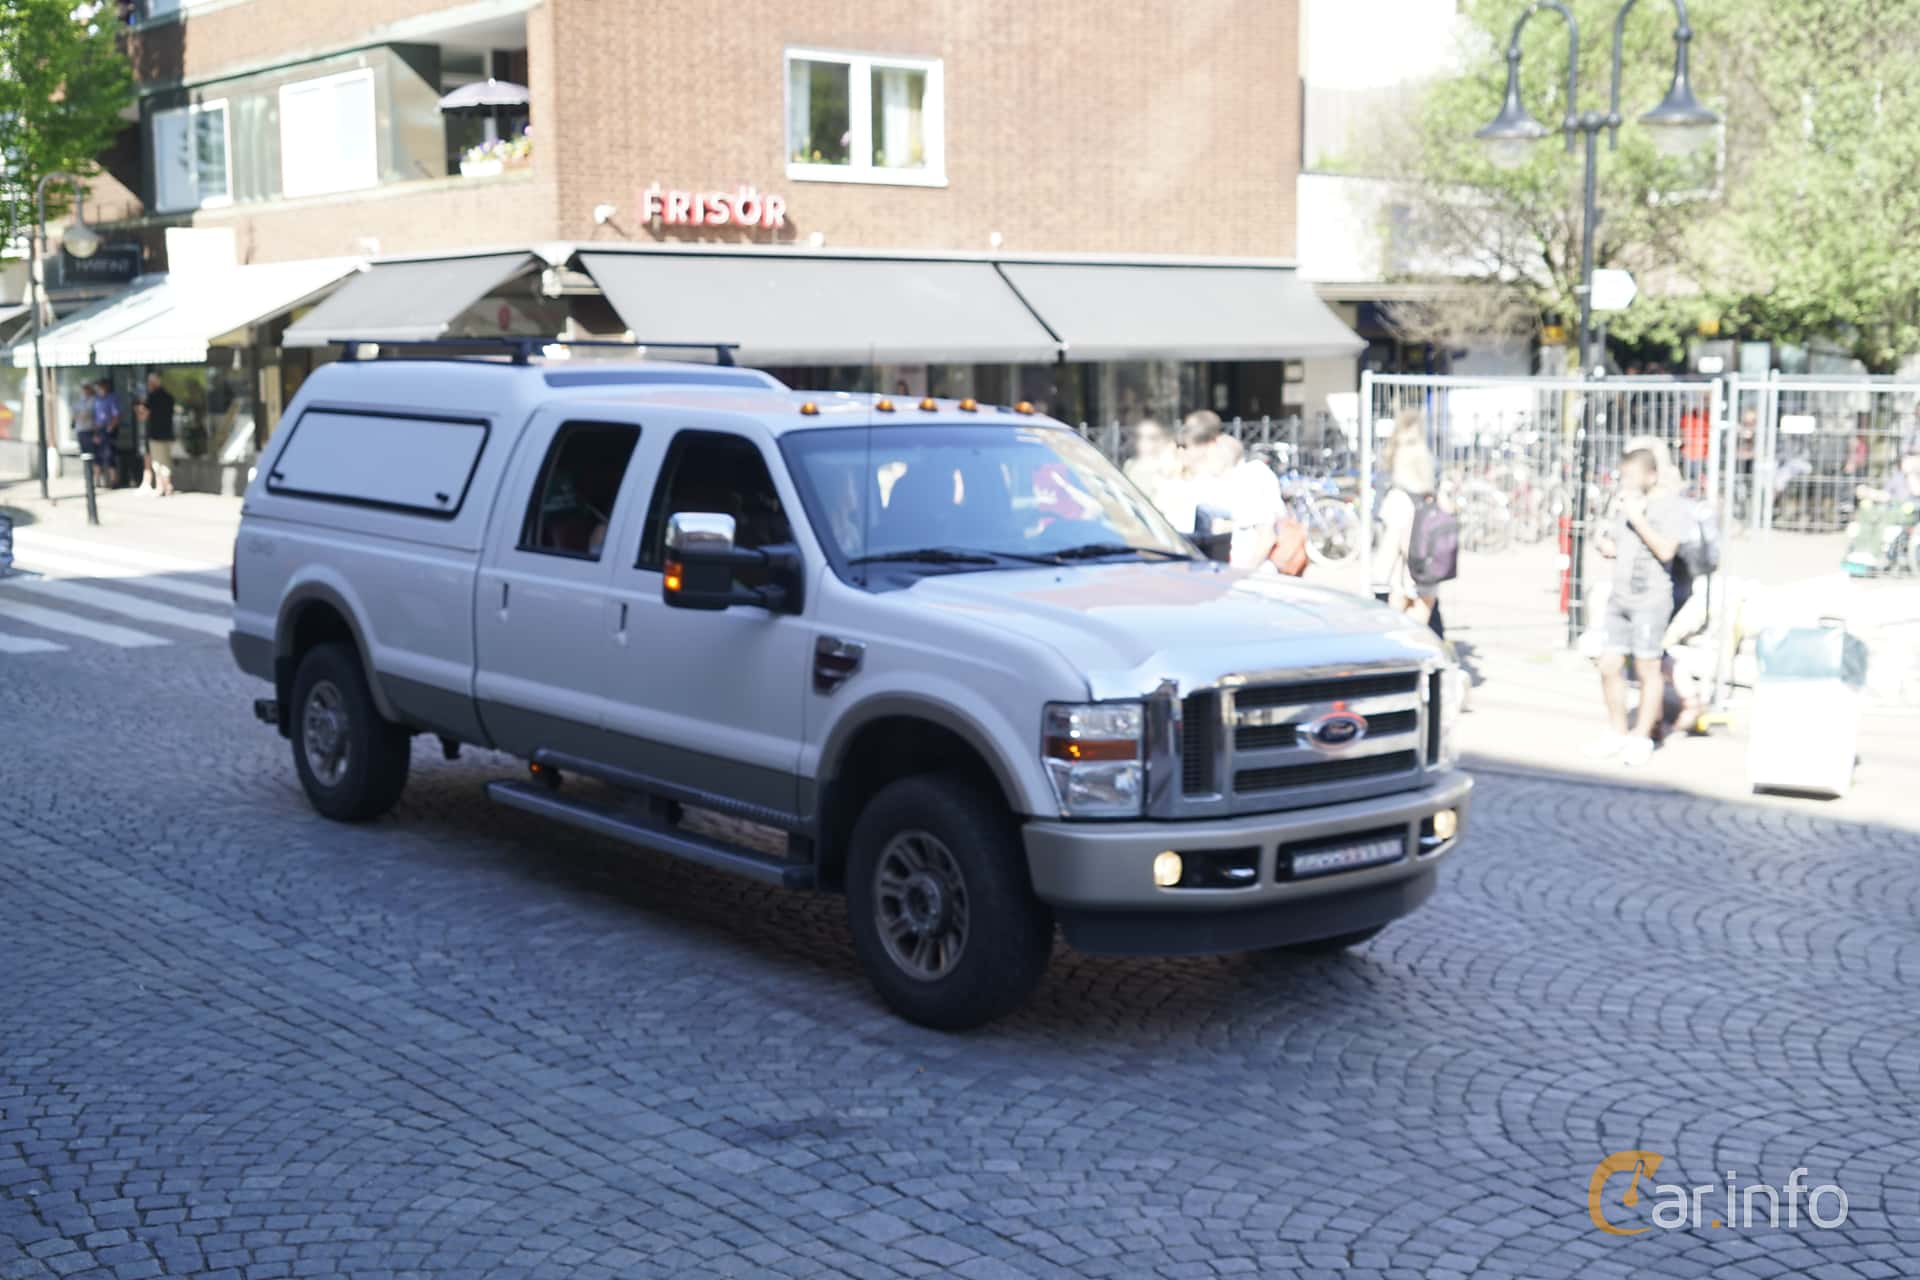 Front/Side  of Ford F-250 Crew Cab 6.4 V8 4x4 Automatic, 355ps, 2010 at Hässleholm Power Start of Summer Meet 2017